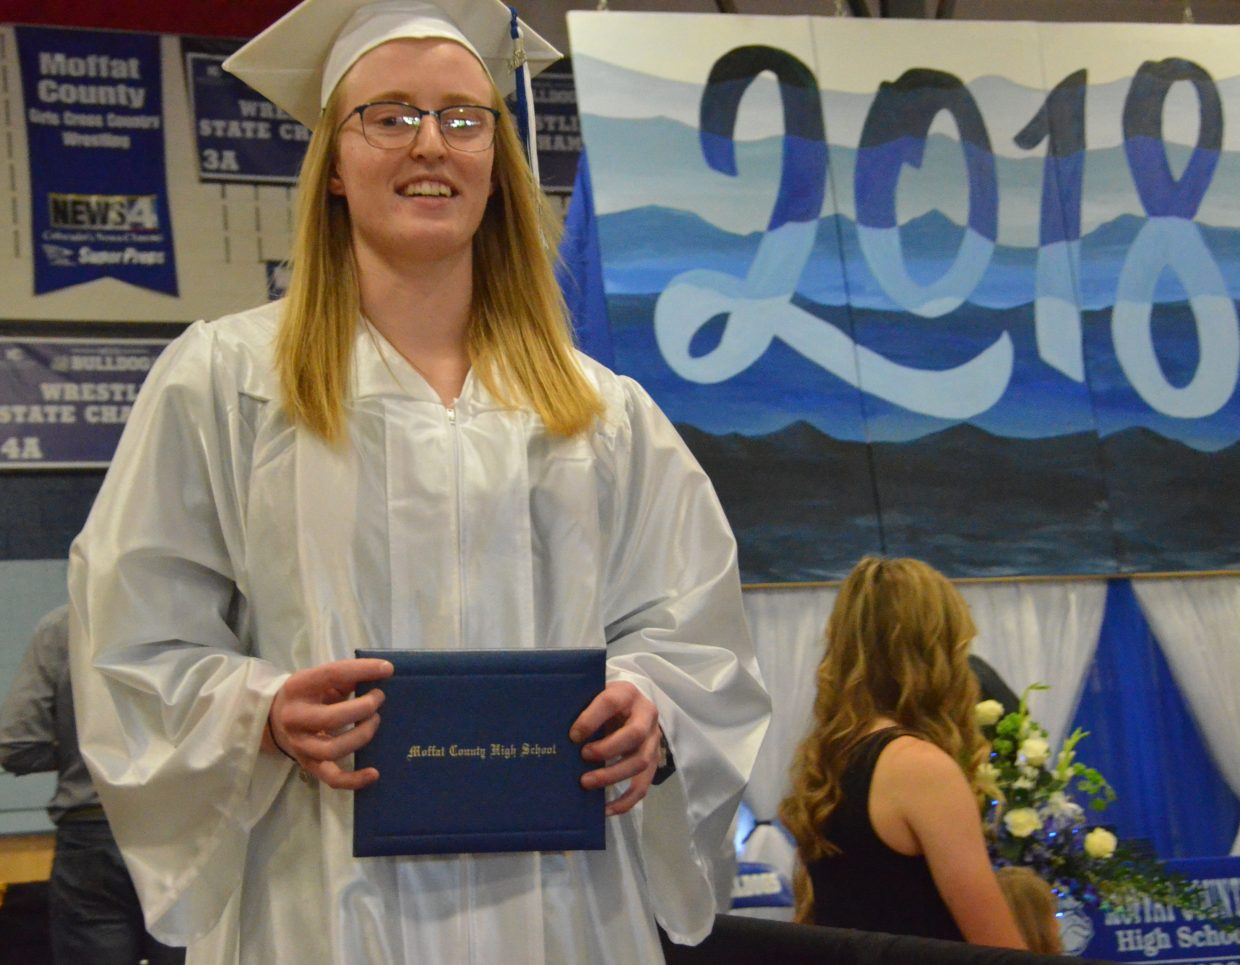 Moffat County High School's Makenna Baker exits the stage after getting her diploma during Saturday's graduation ceremony.